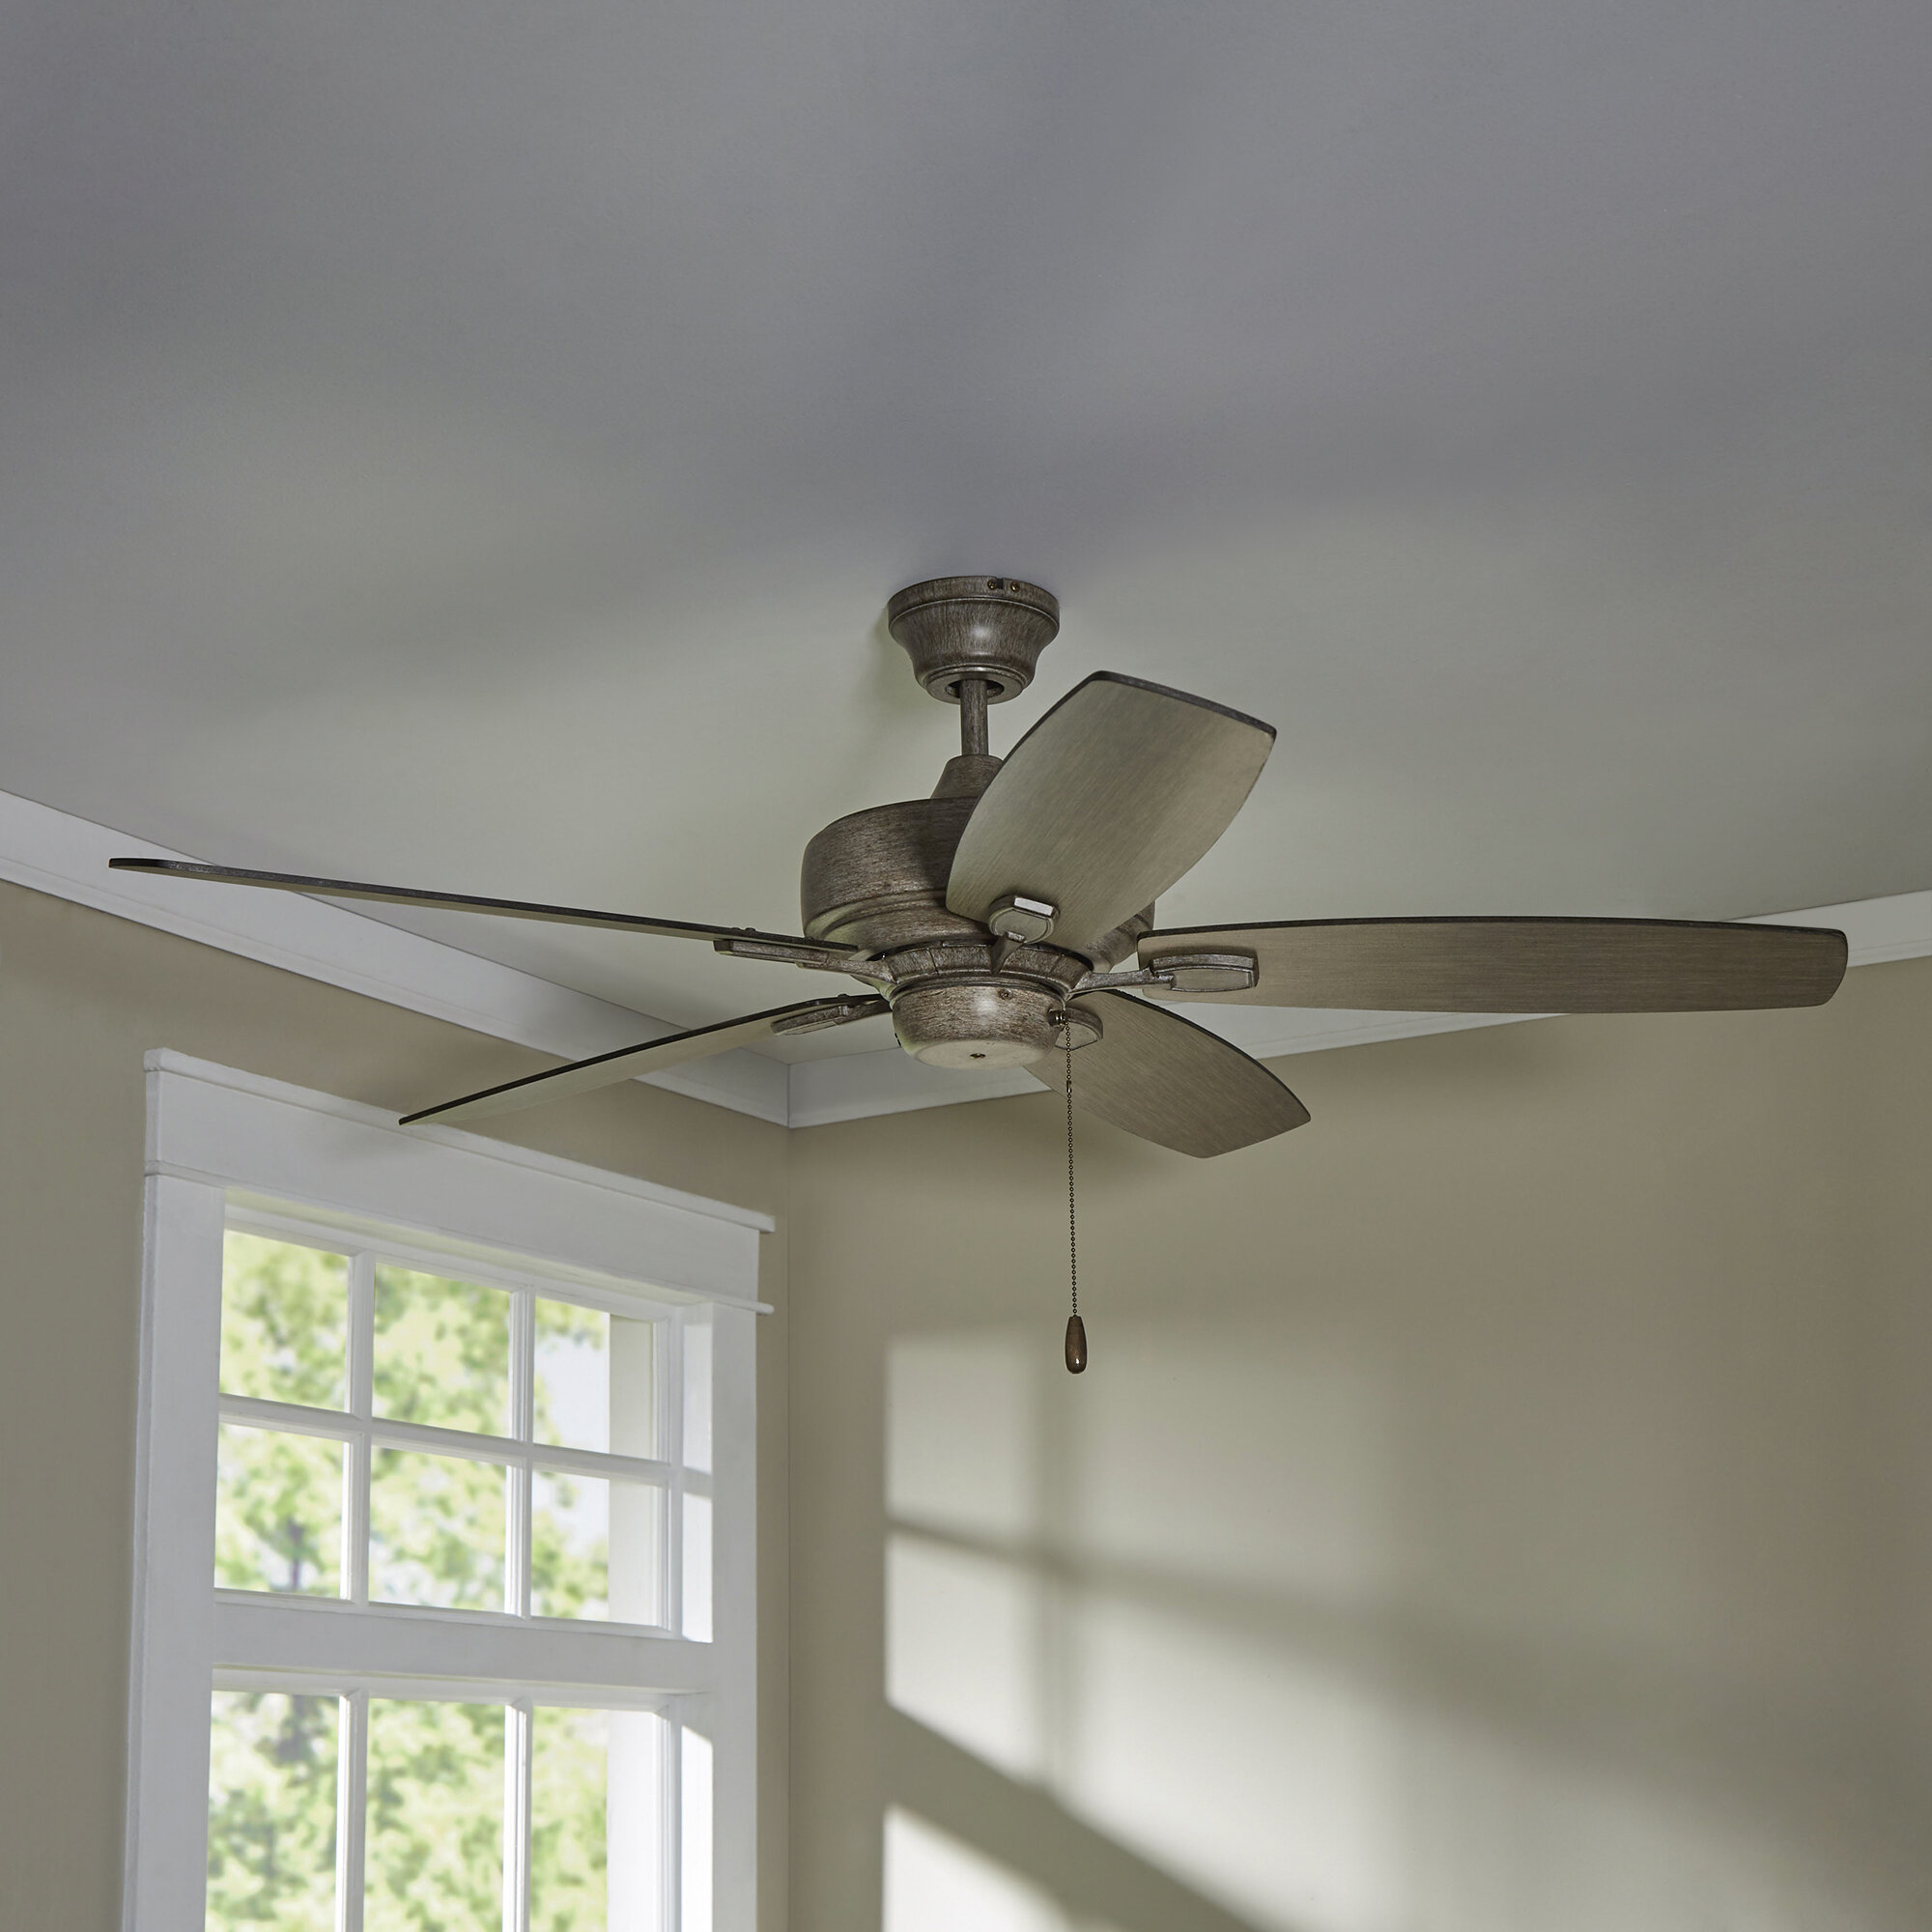 Alcott Hill Bunting 5 Blade Ceiling Fan & Reviews